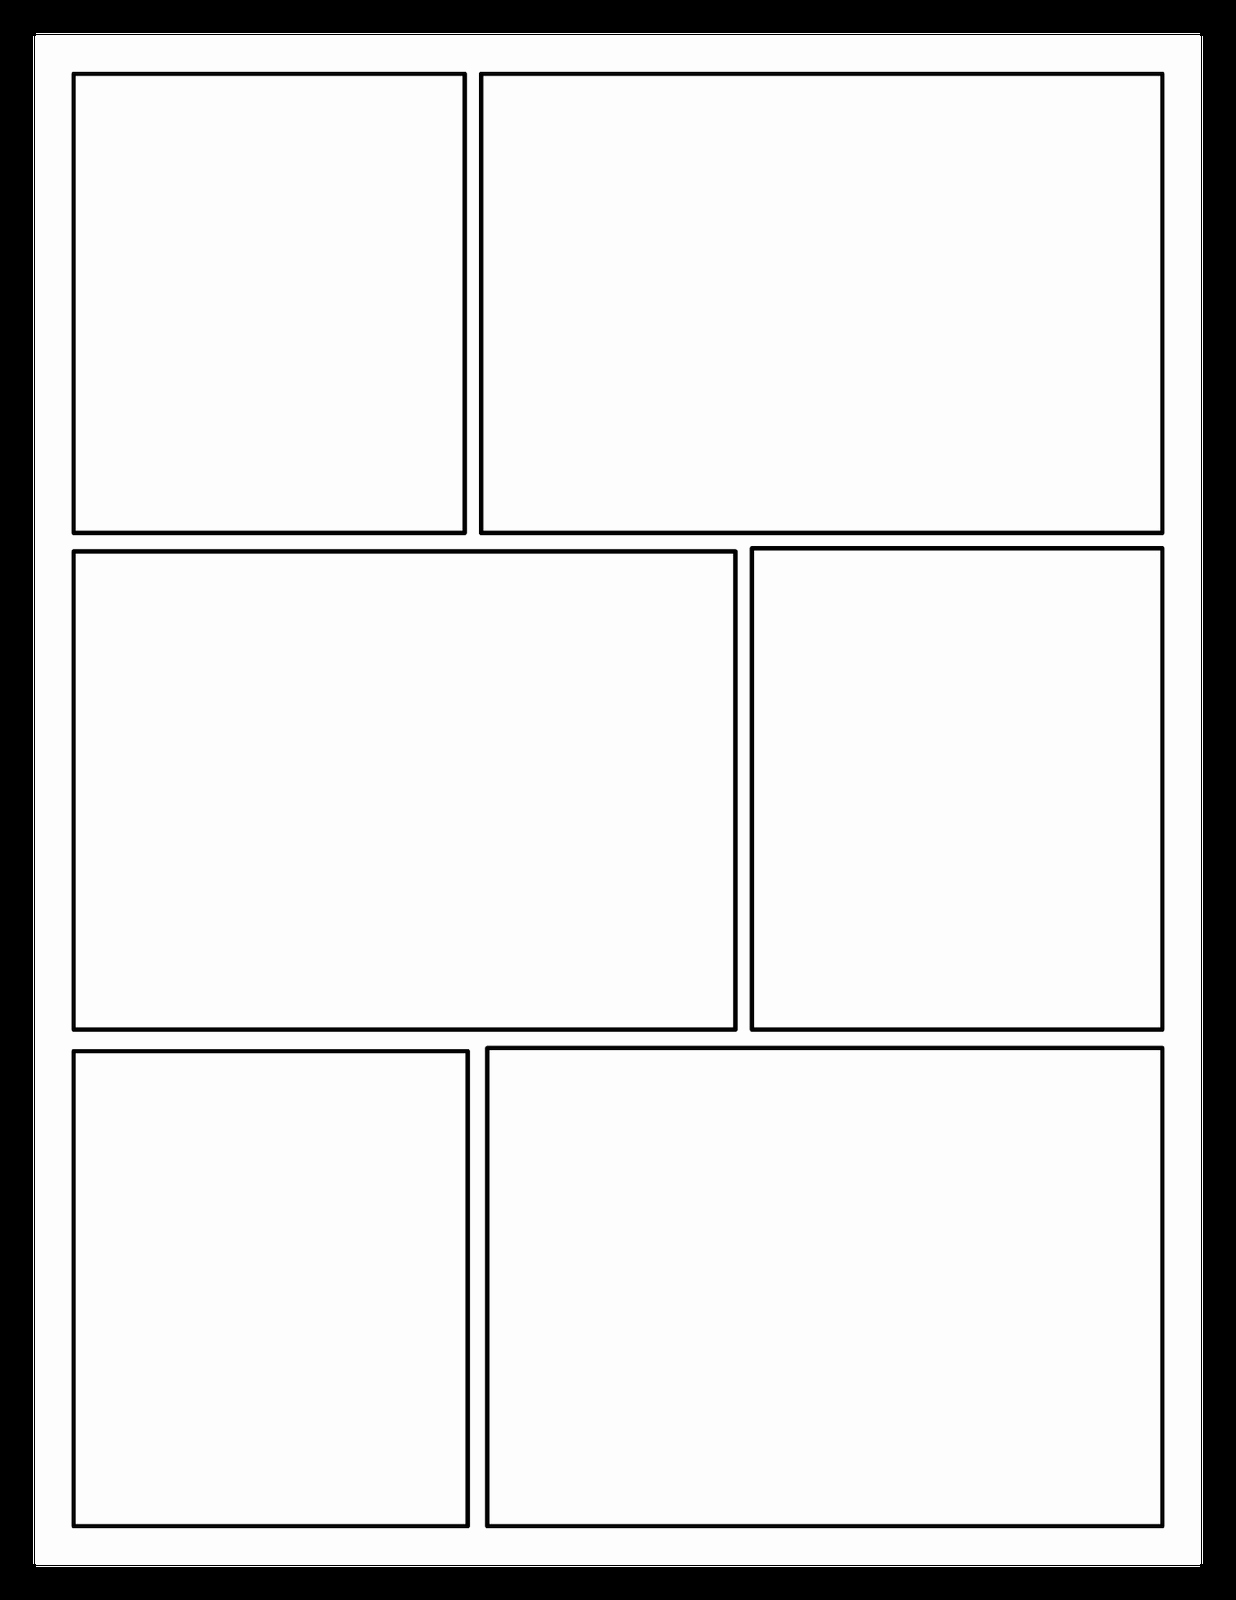 Free Printable Comic Strip Template Elegant Mrs orman S Classroom Fering Choices for Your Readers